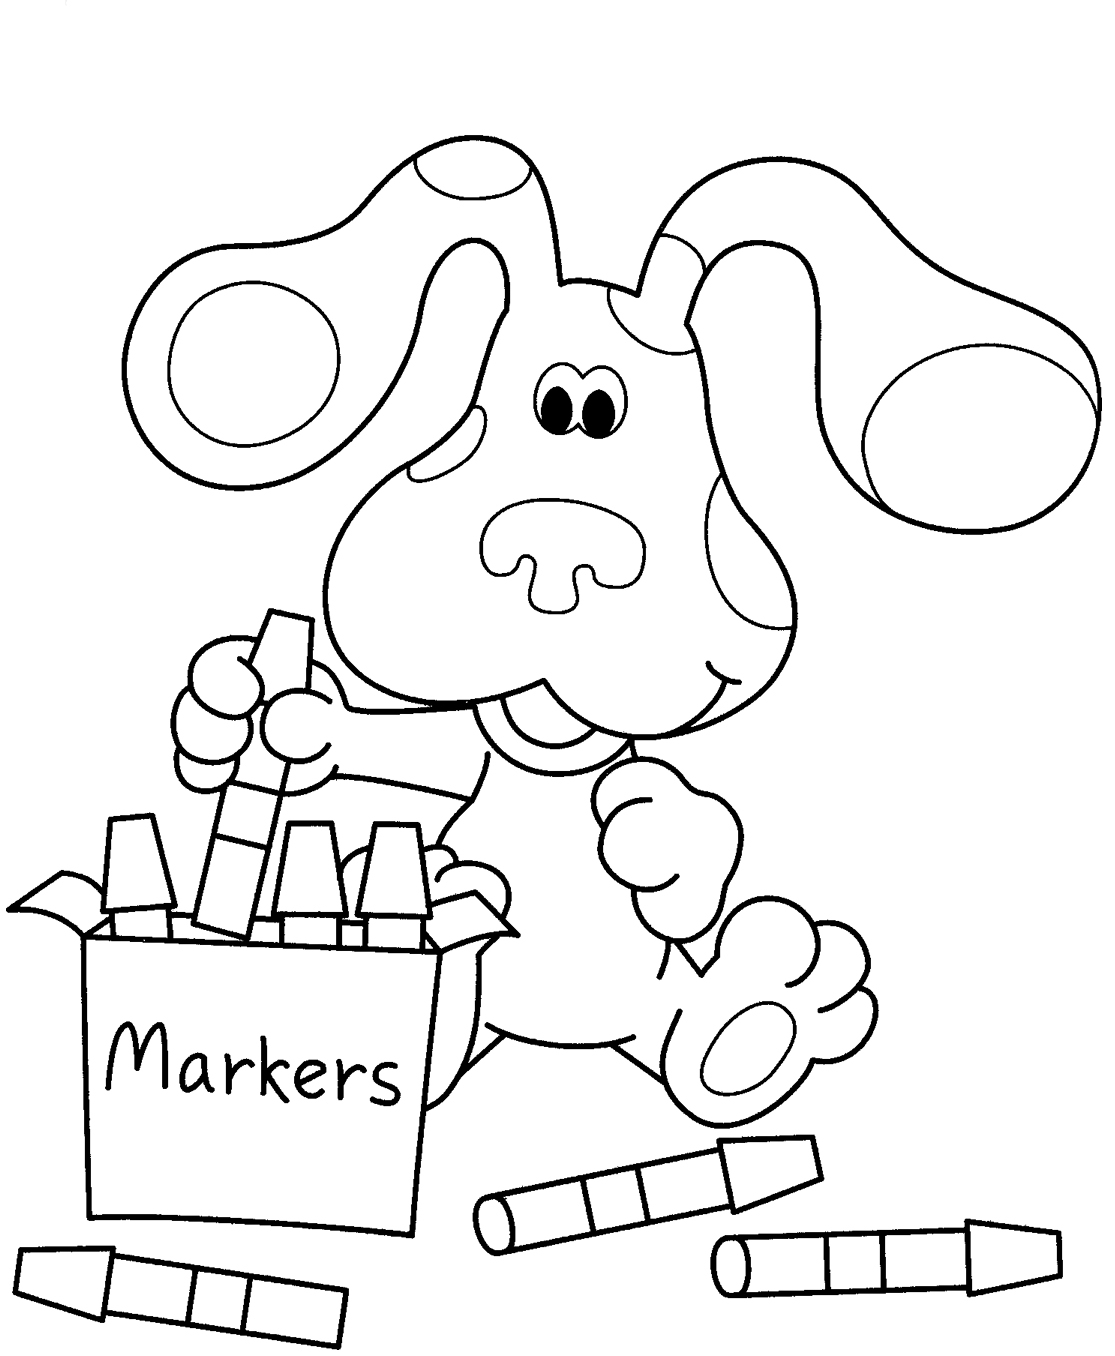 Nickelodeon Coloring Pages Nick Jr Coloring Pages 14  Coloring Kids